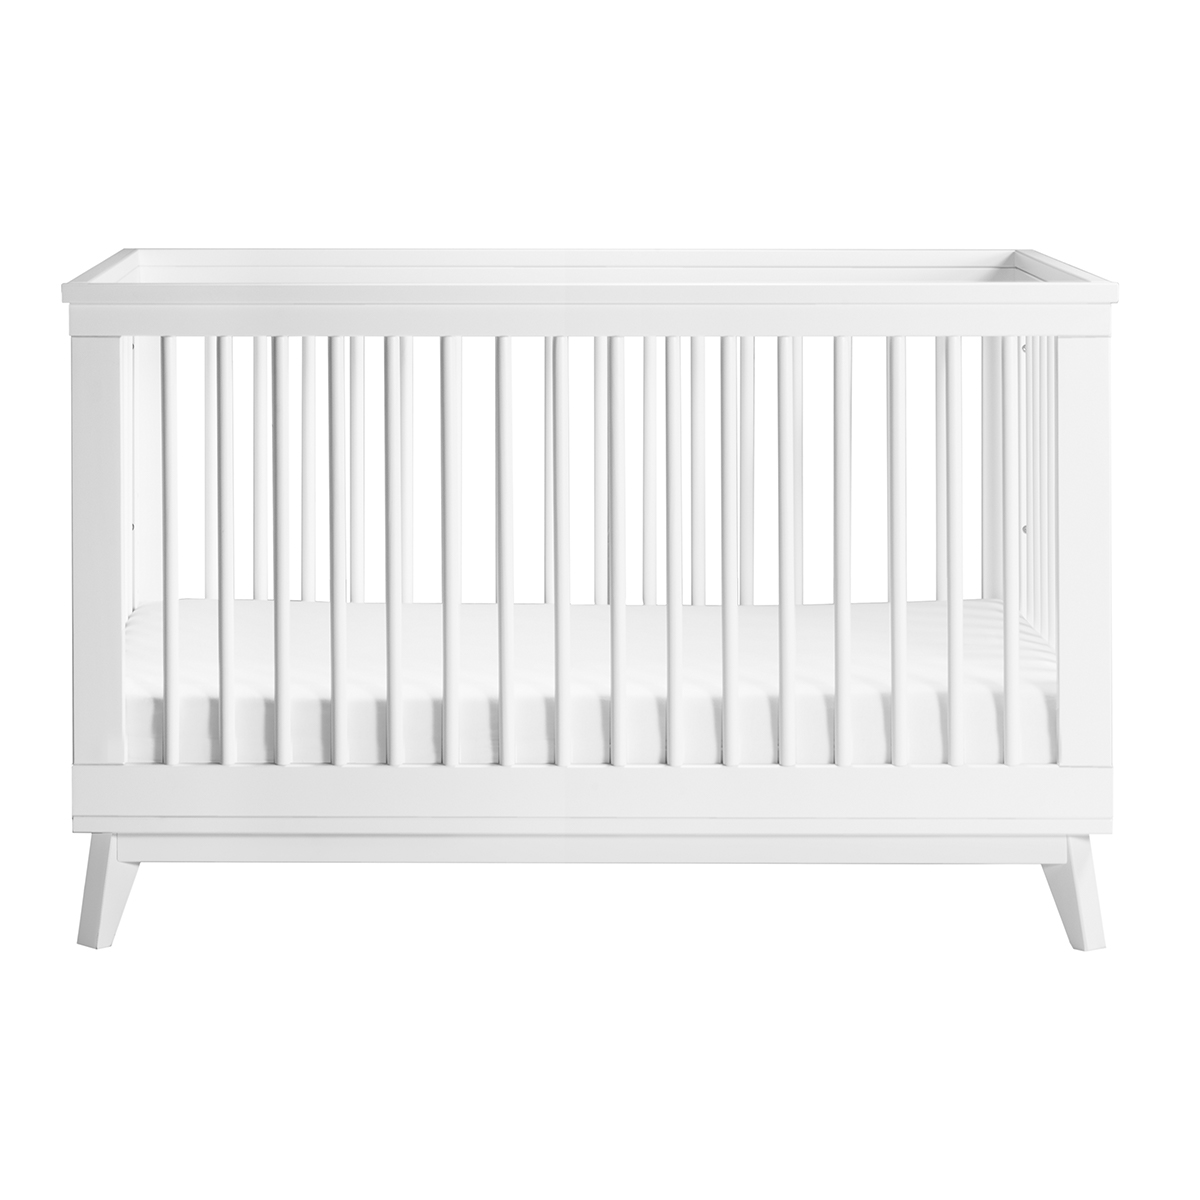 Scoot 3-in-1 Convertible Crib with Conversion Kit